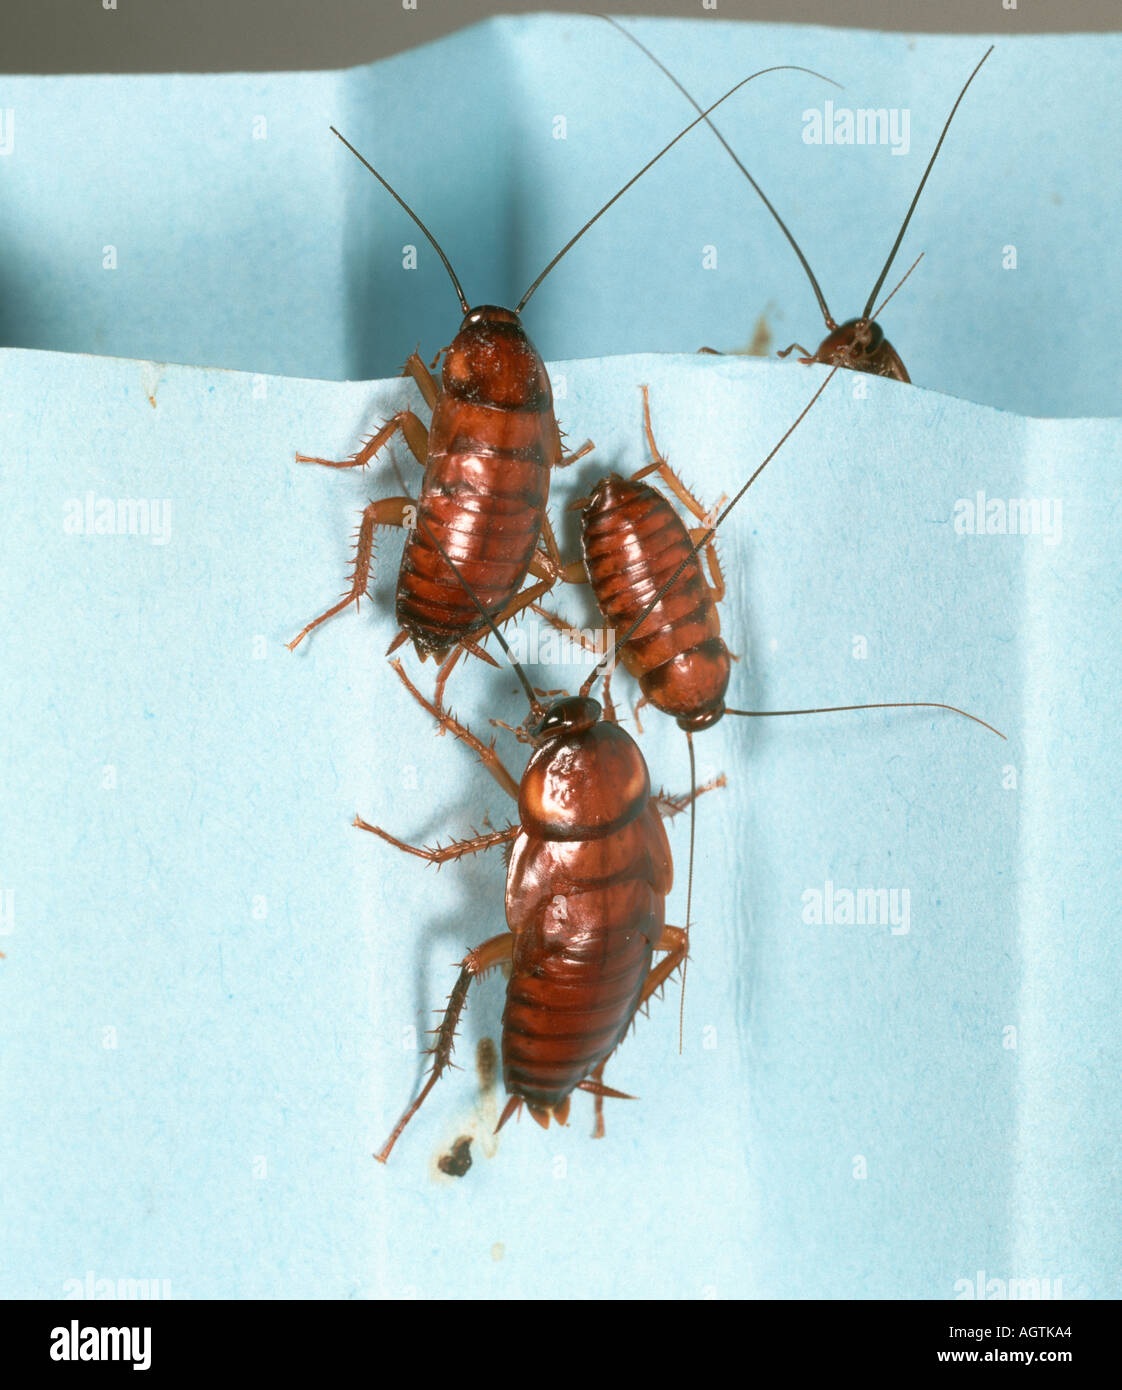 Cockroaches Kitchen Stock Photos & Cockroaches Kitchen Stock Images ...